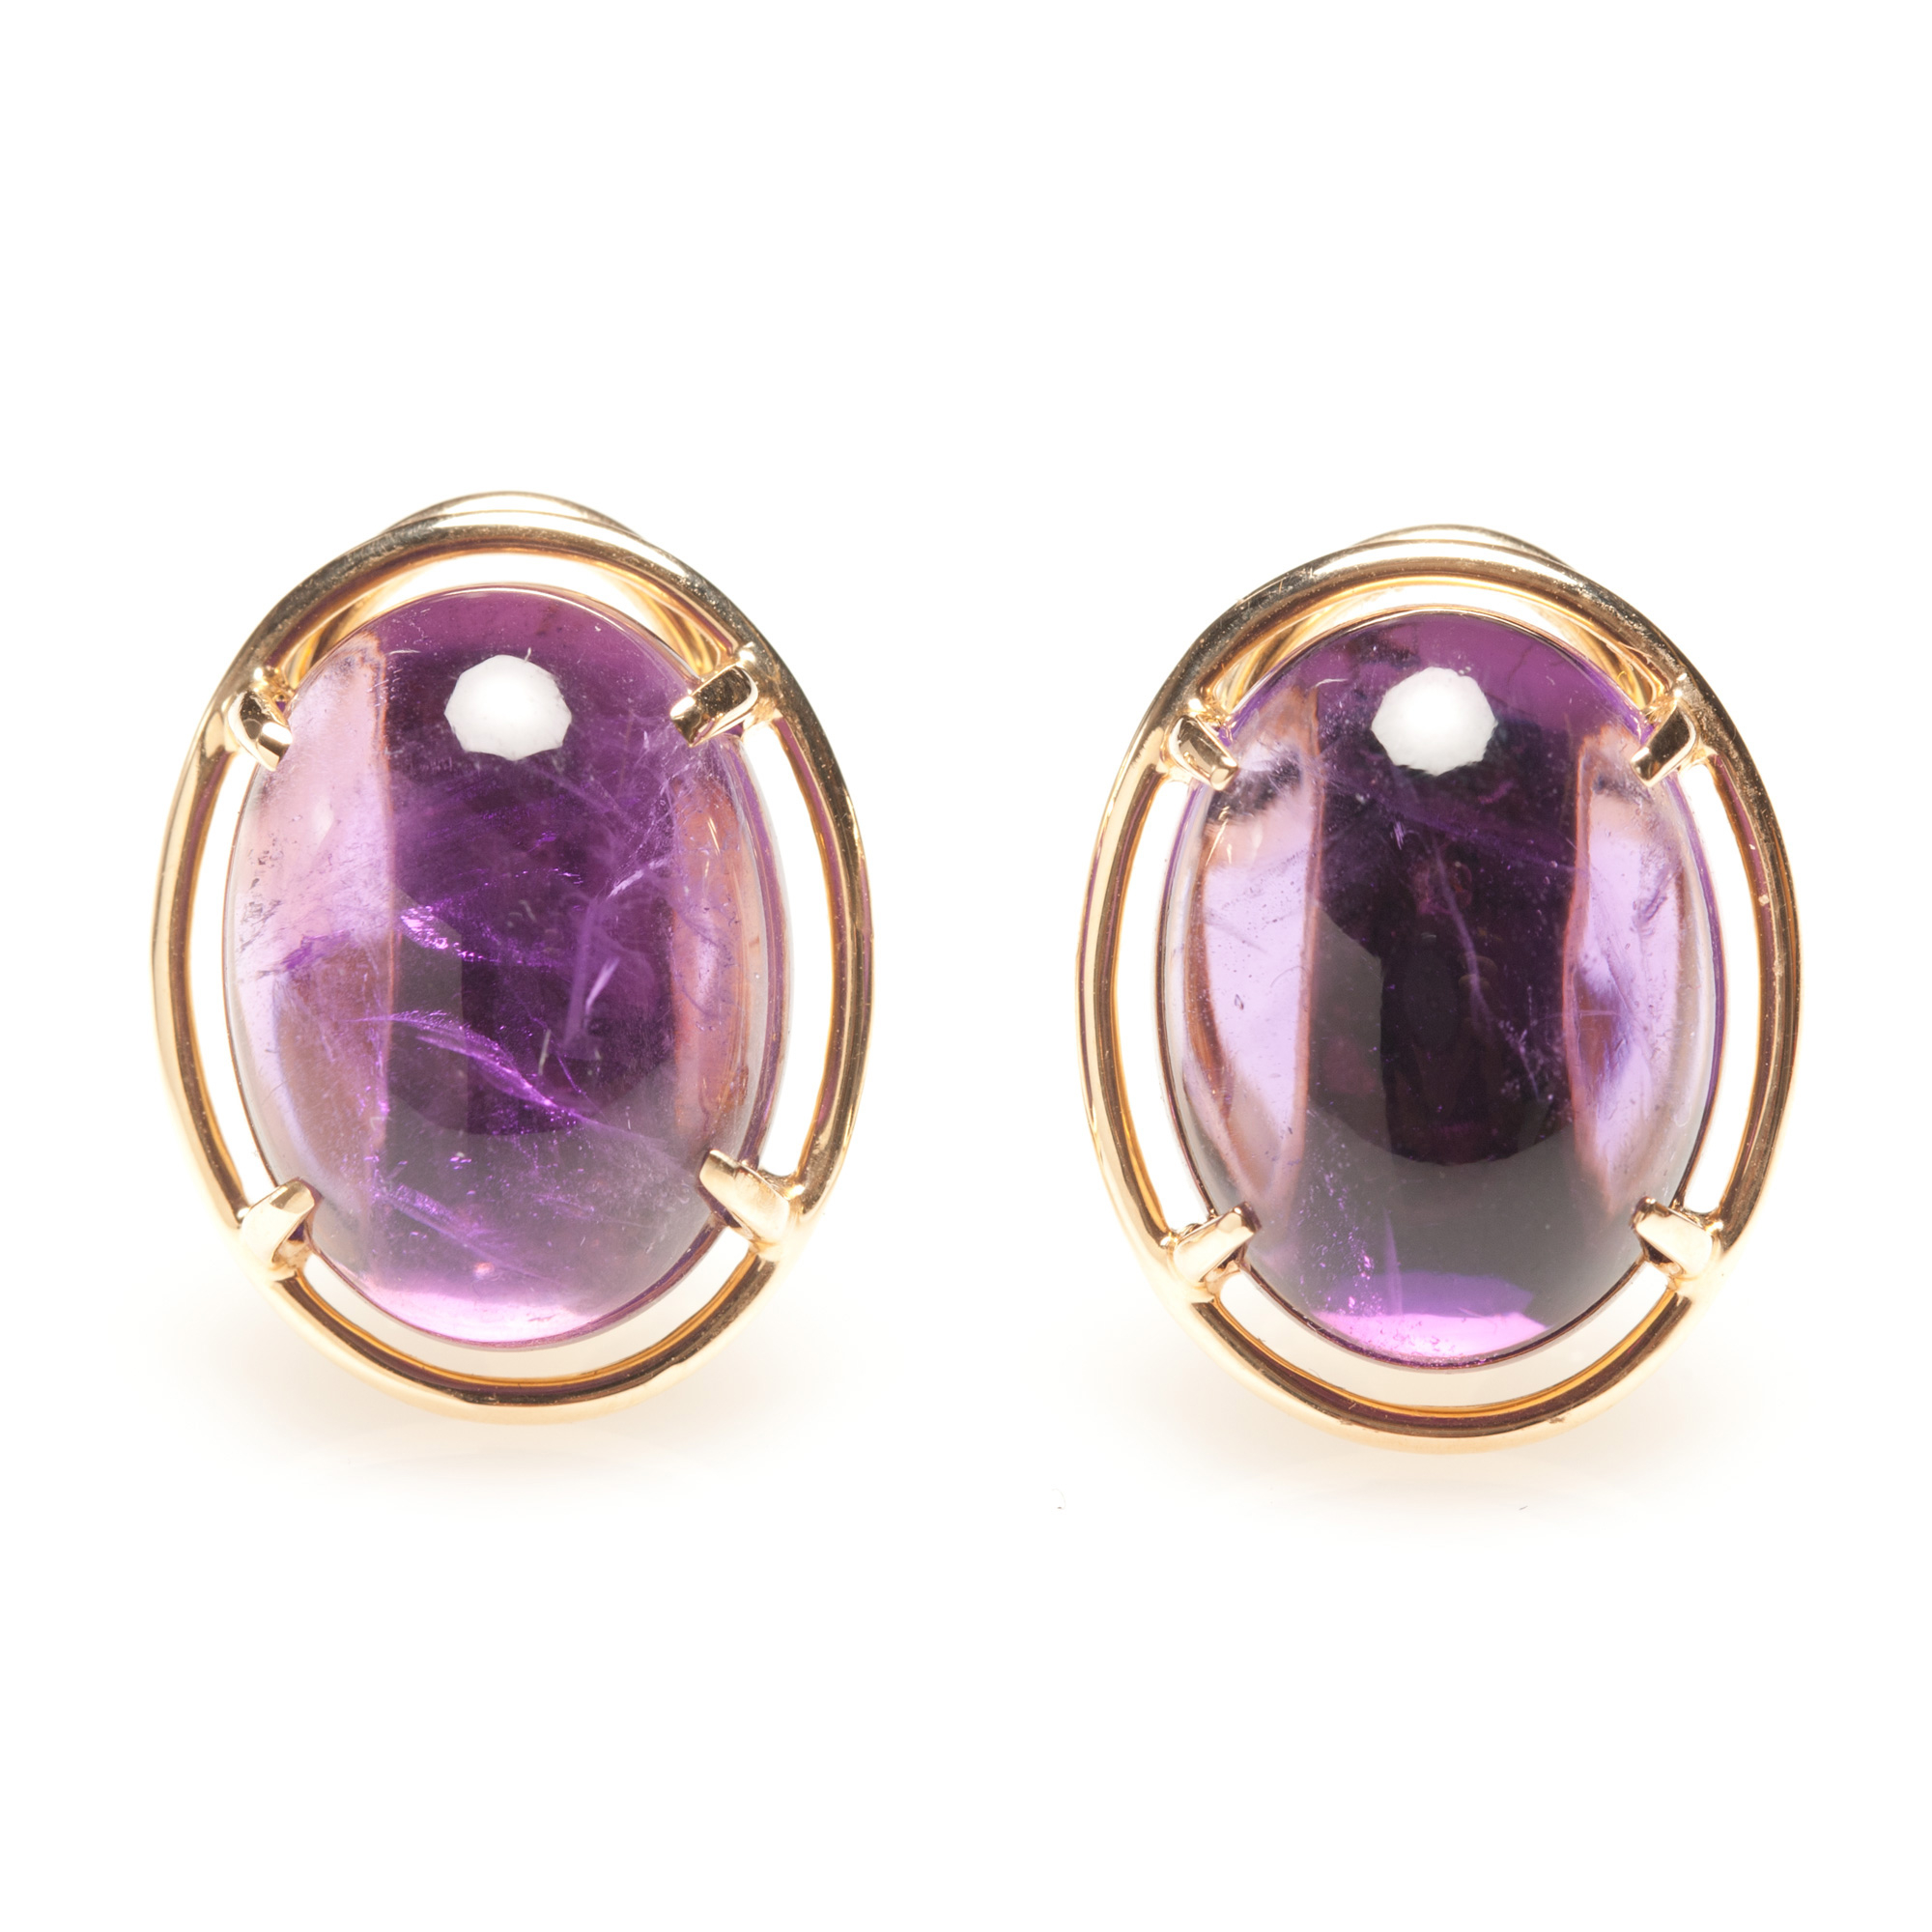 Gump's Amethyst Cabochon Earrings